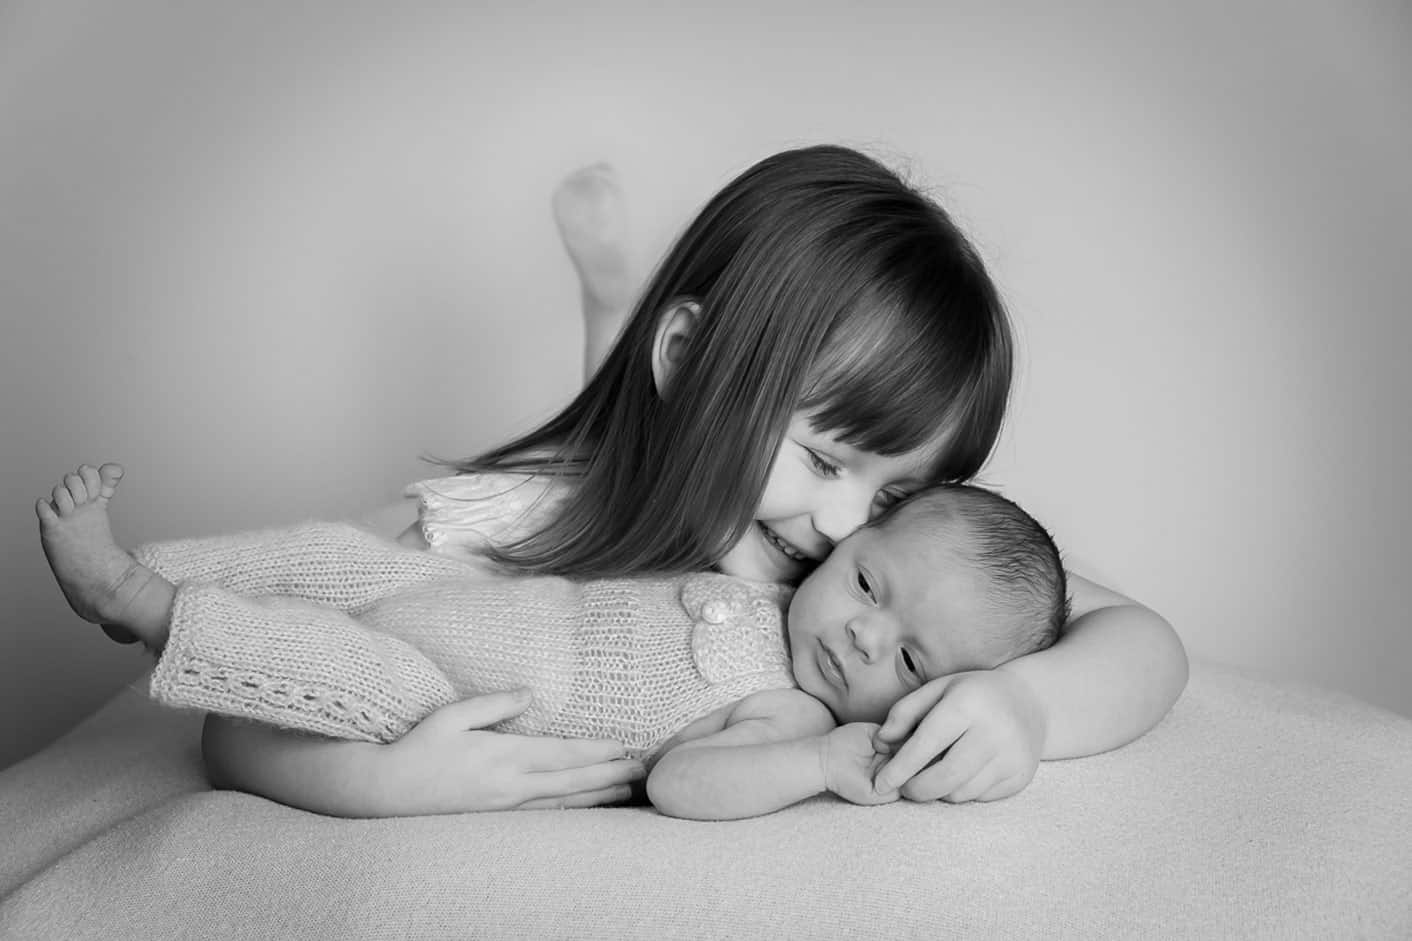 Newborn and sibling sister cuddle for the studio photo in Edinburgh